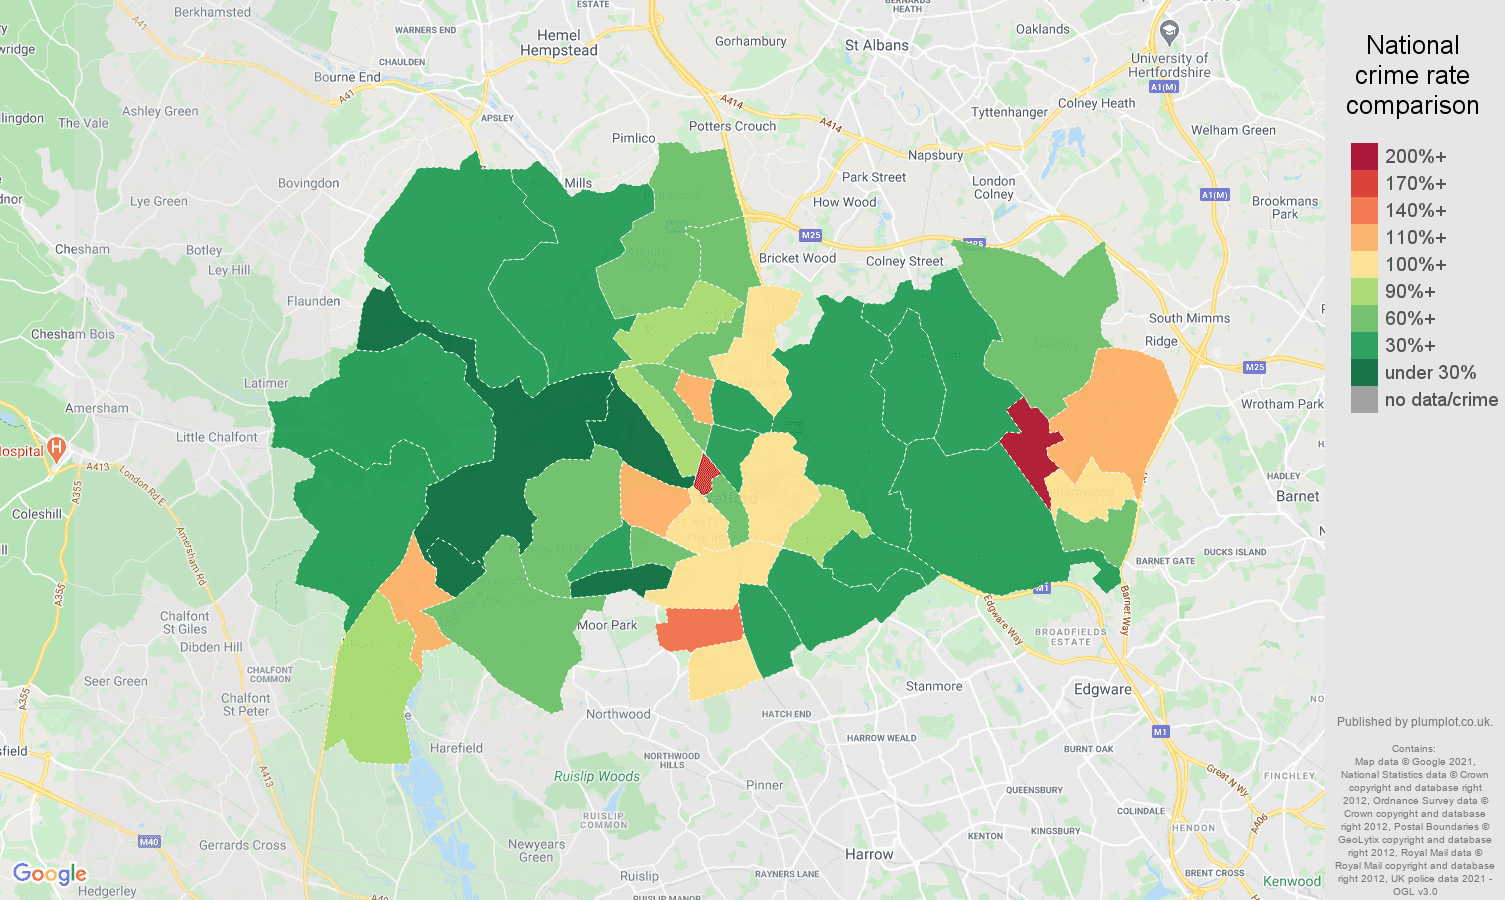 Watford antisocial behaviour crime rate comparison map